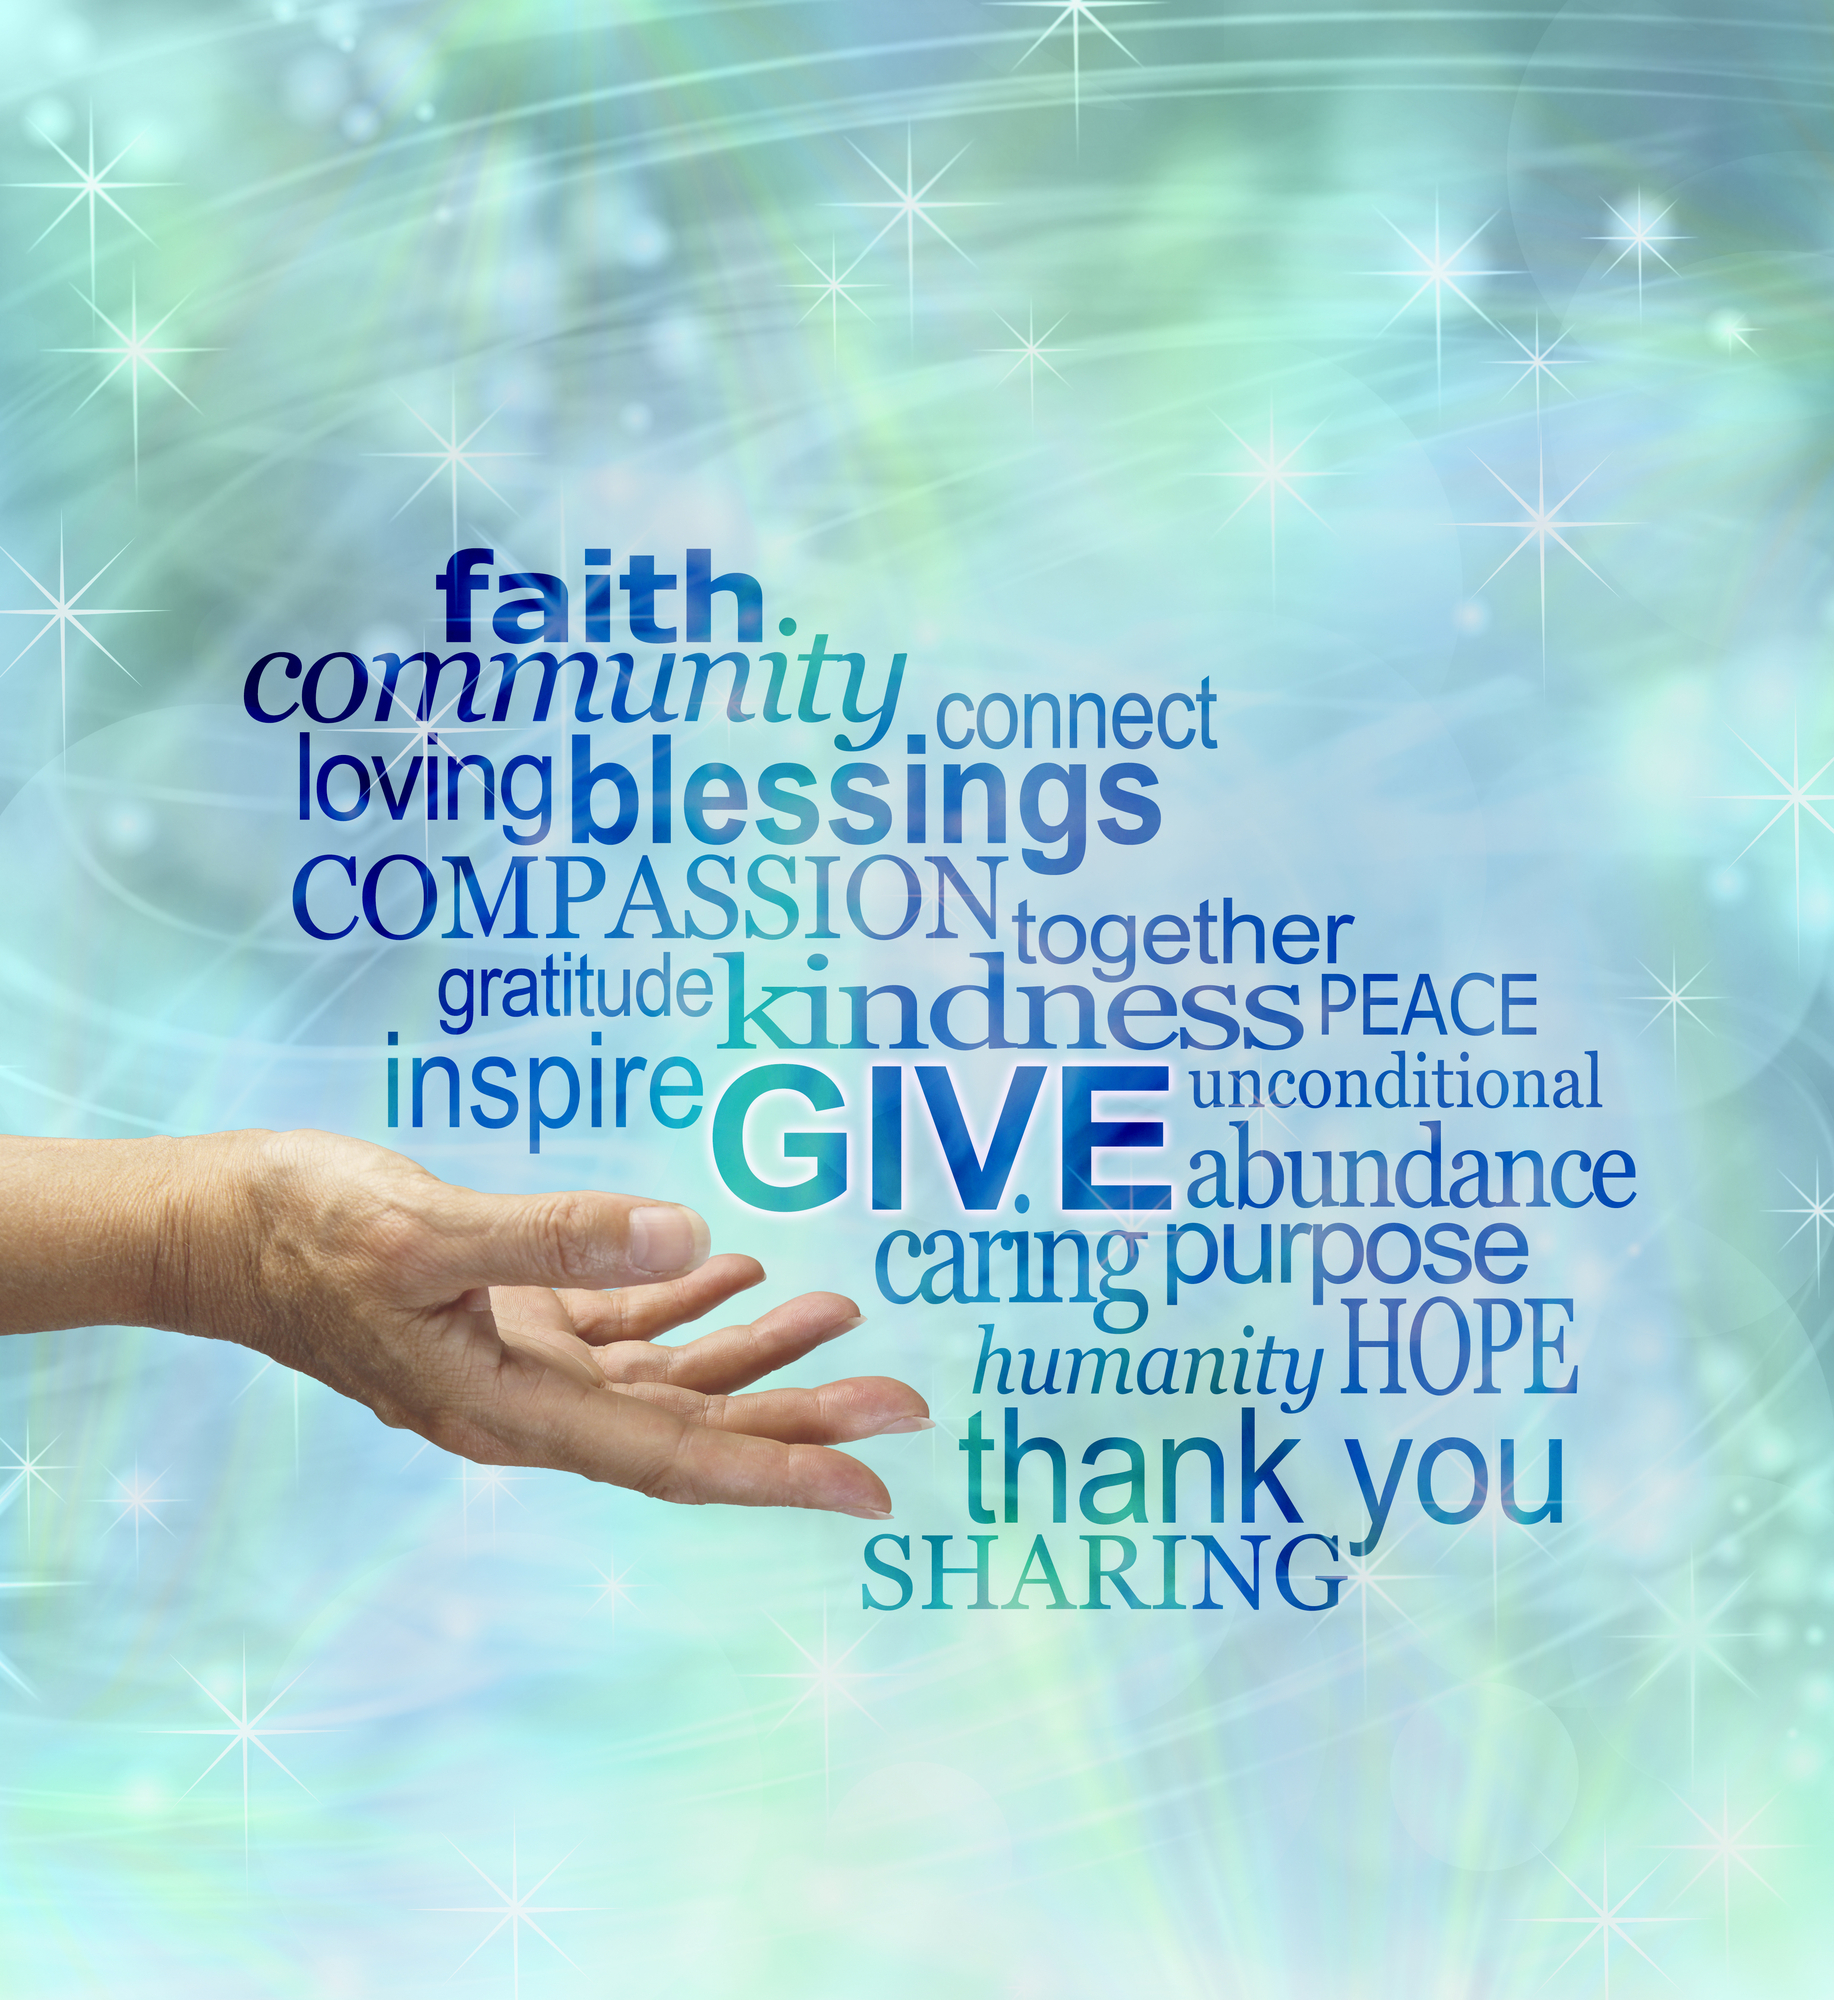 Hand holding words of inspiration including faith, community, loving, blessings, kindness.